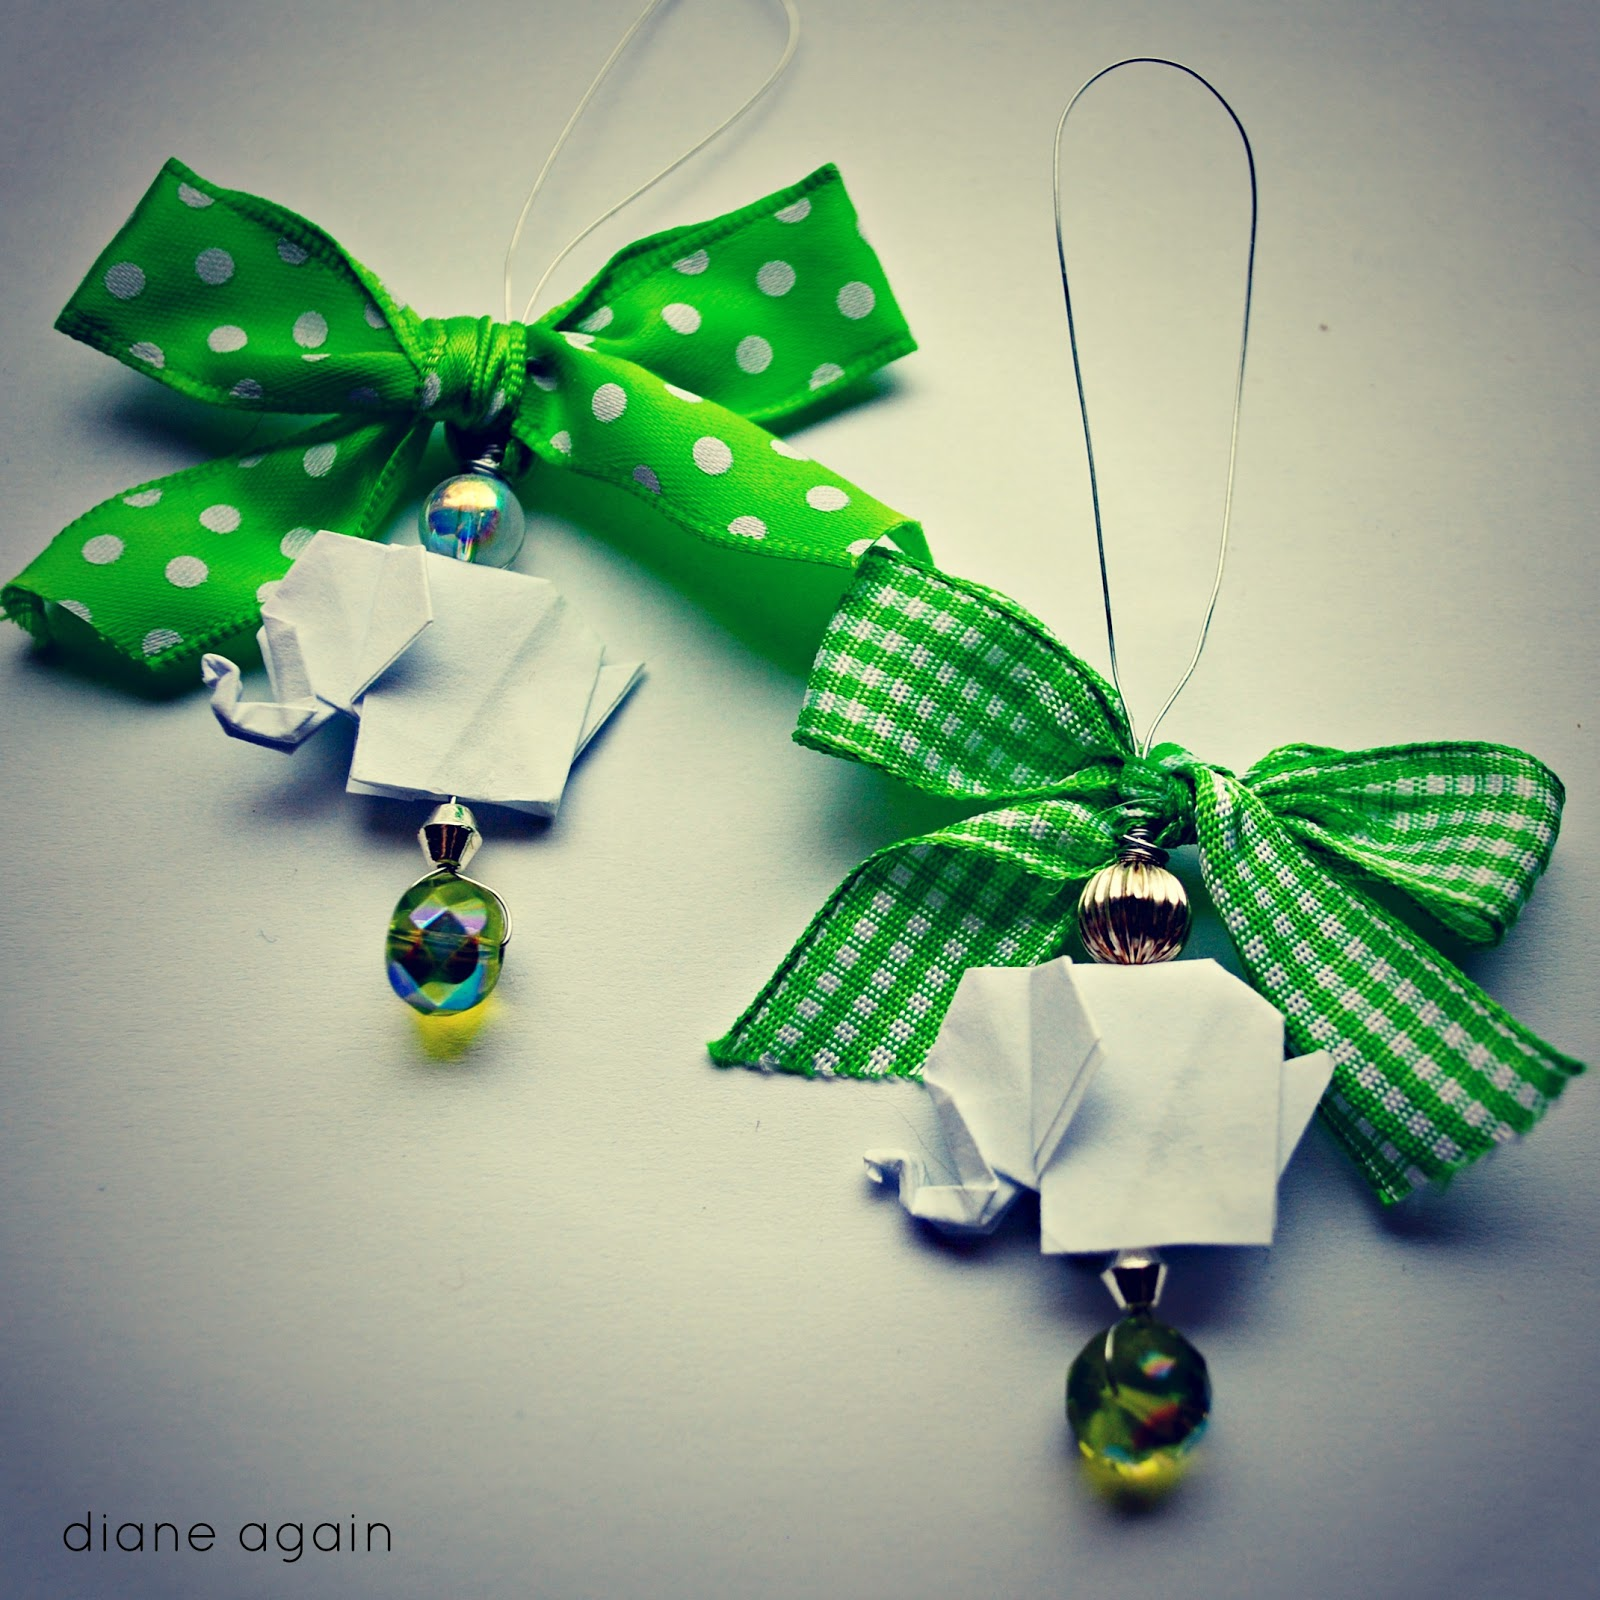 Picture Of Diy Origami Ornaments: Diane Again: My Handmade Holiday Ornament Tradition